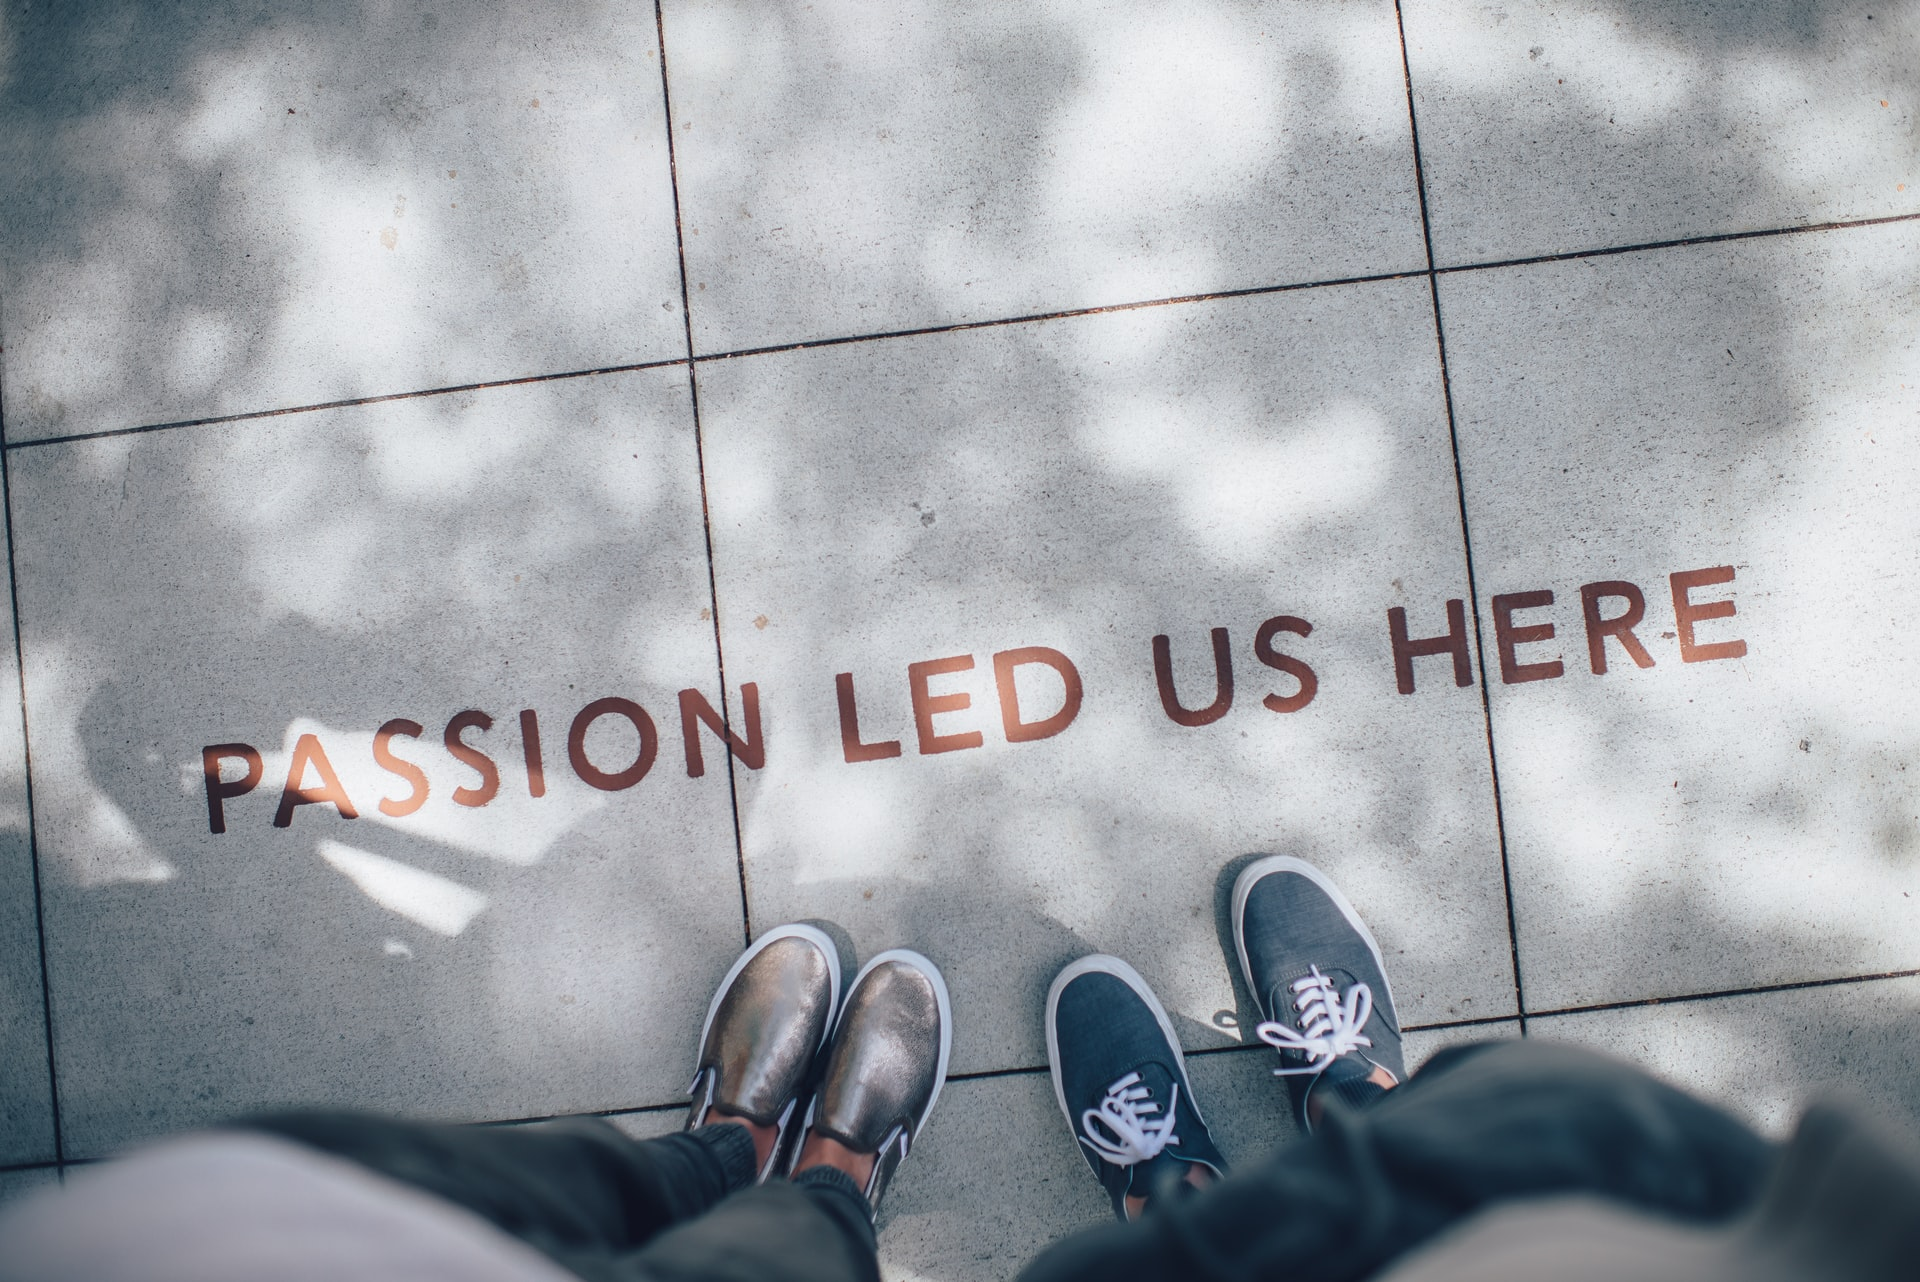 This is an image of two peoples feet, stood on a pavement. One of them is wearing golden shoes and the other is wearing blue shoes with white laces. There is a sign on the floor that reads 'Passion led us here.'